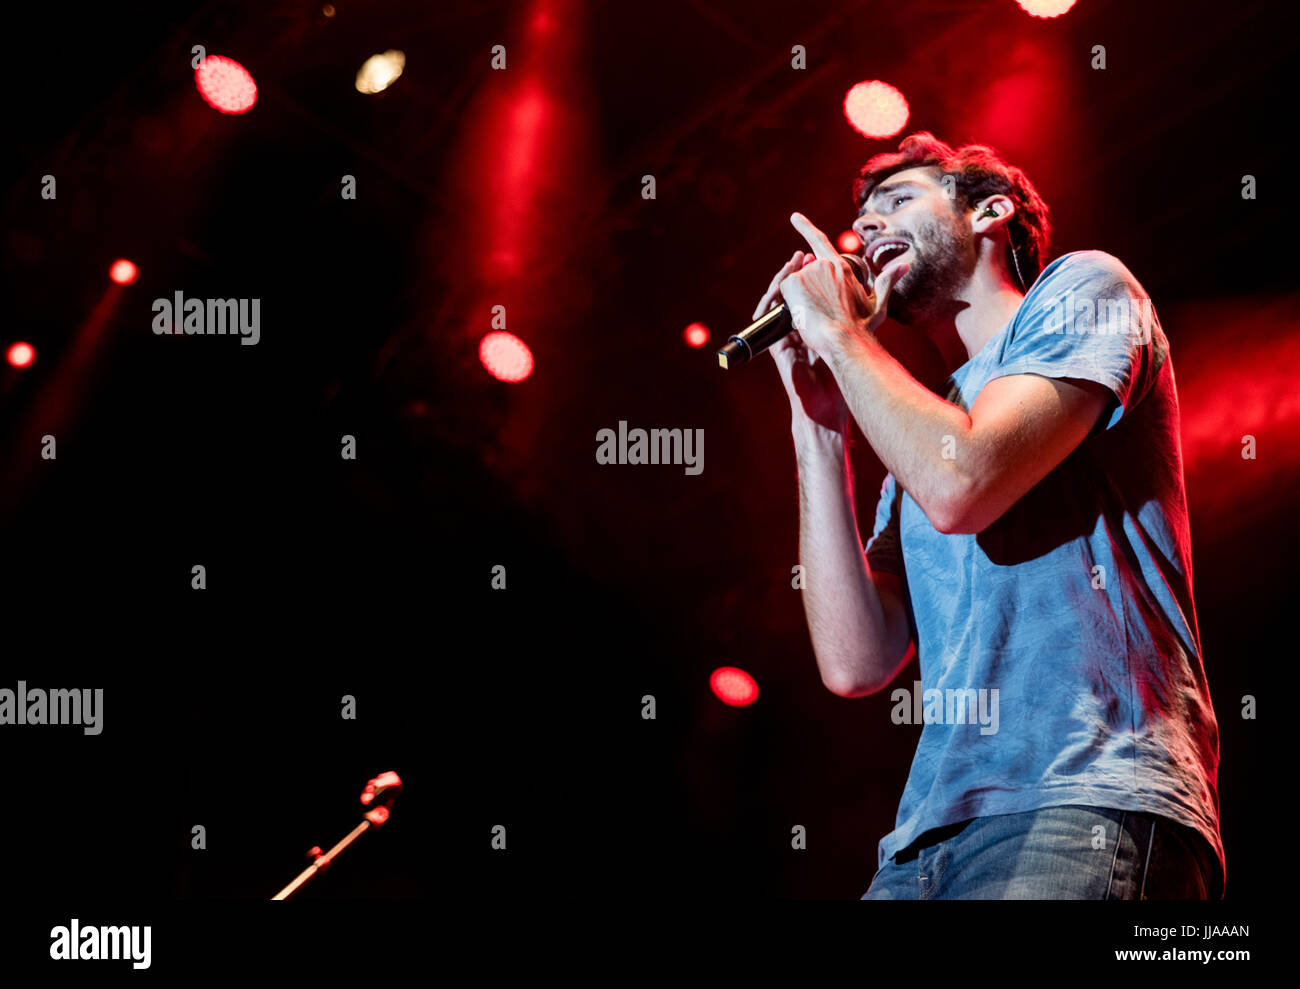 Grugliasco, UK. 18th July, 2017. The spanish pop singer Alvaro Soler performs at GruVilllage Festival in Grugliasco, Stock Photo